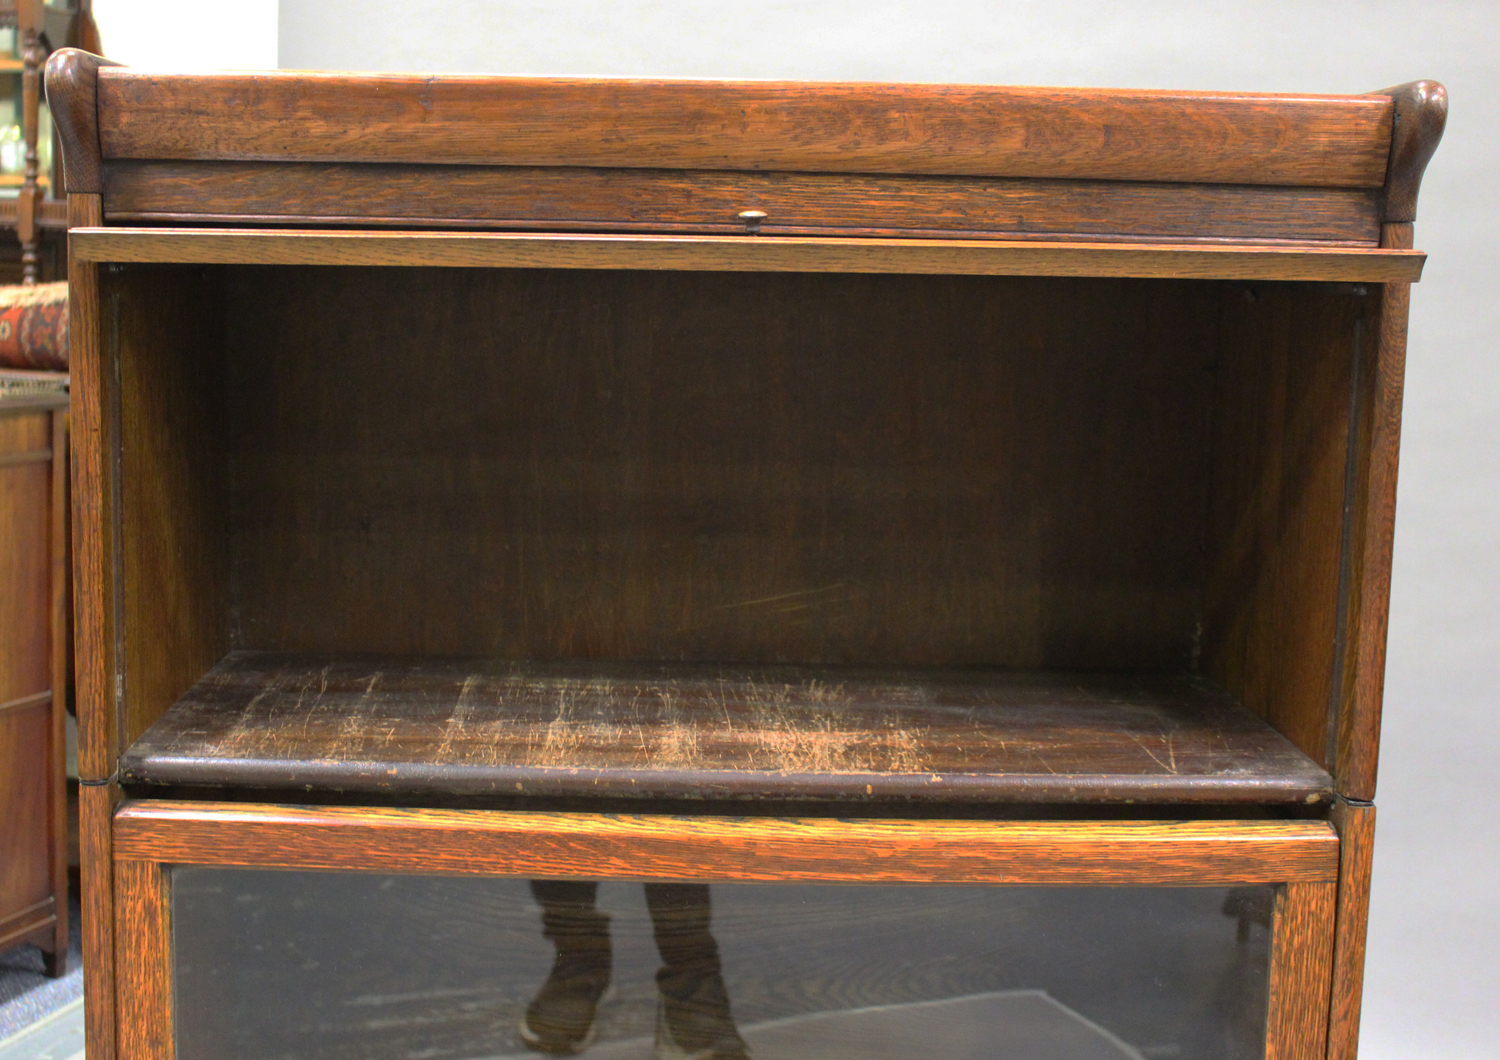 An early 20th century Globe Wernicke style oak three-section bookcase, height 136cm, width 88cm, - Image 4 of 5